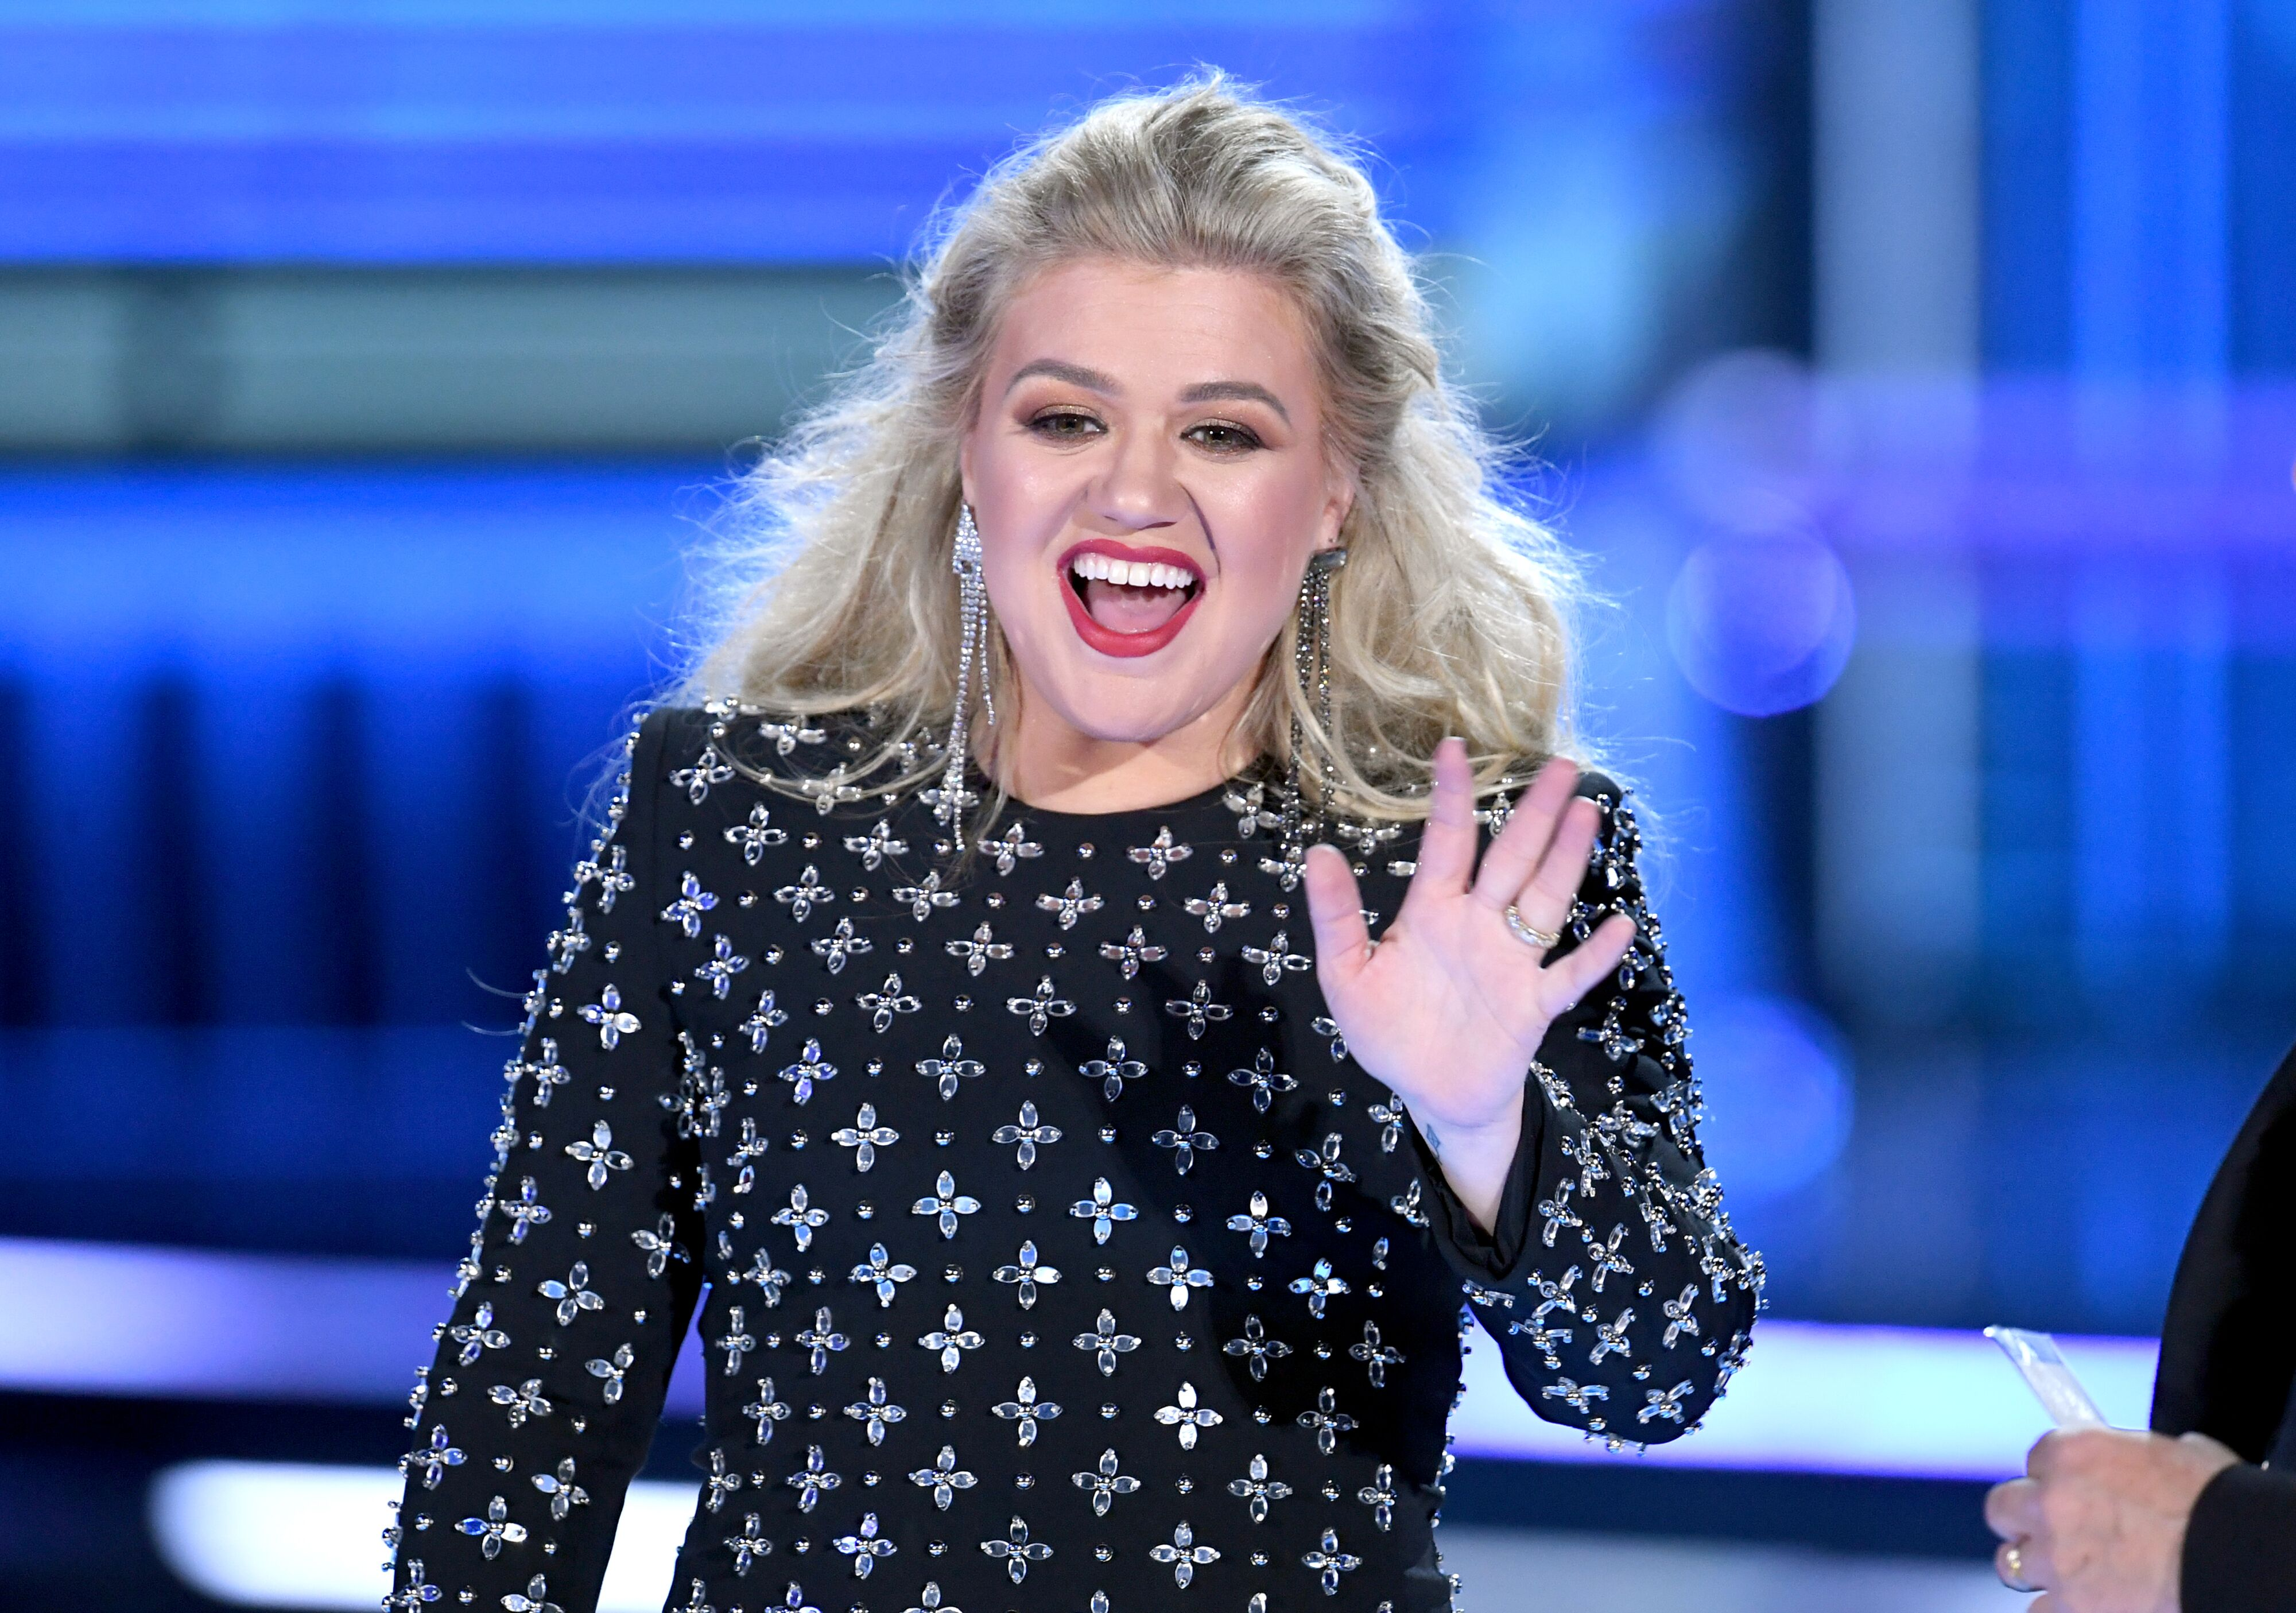 Kelly Clarkson at the Billboard Music Awards on May 01, 2019, in Las Vegas, Nevada | Photo: Kevin Winter/Getty Images